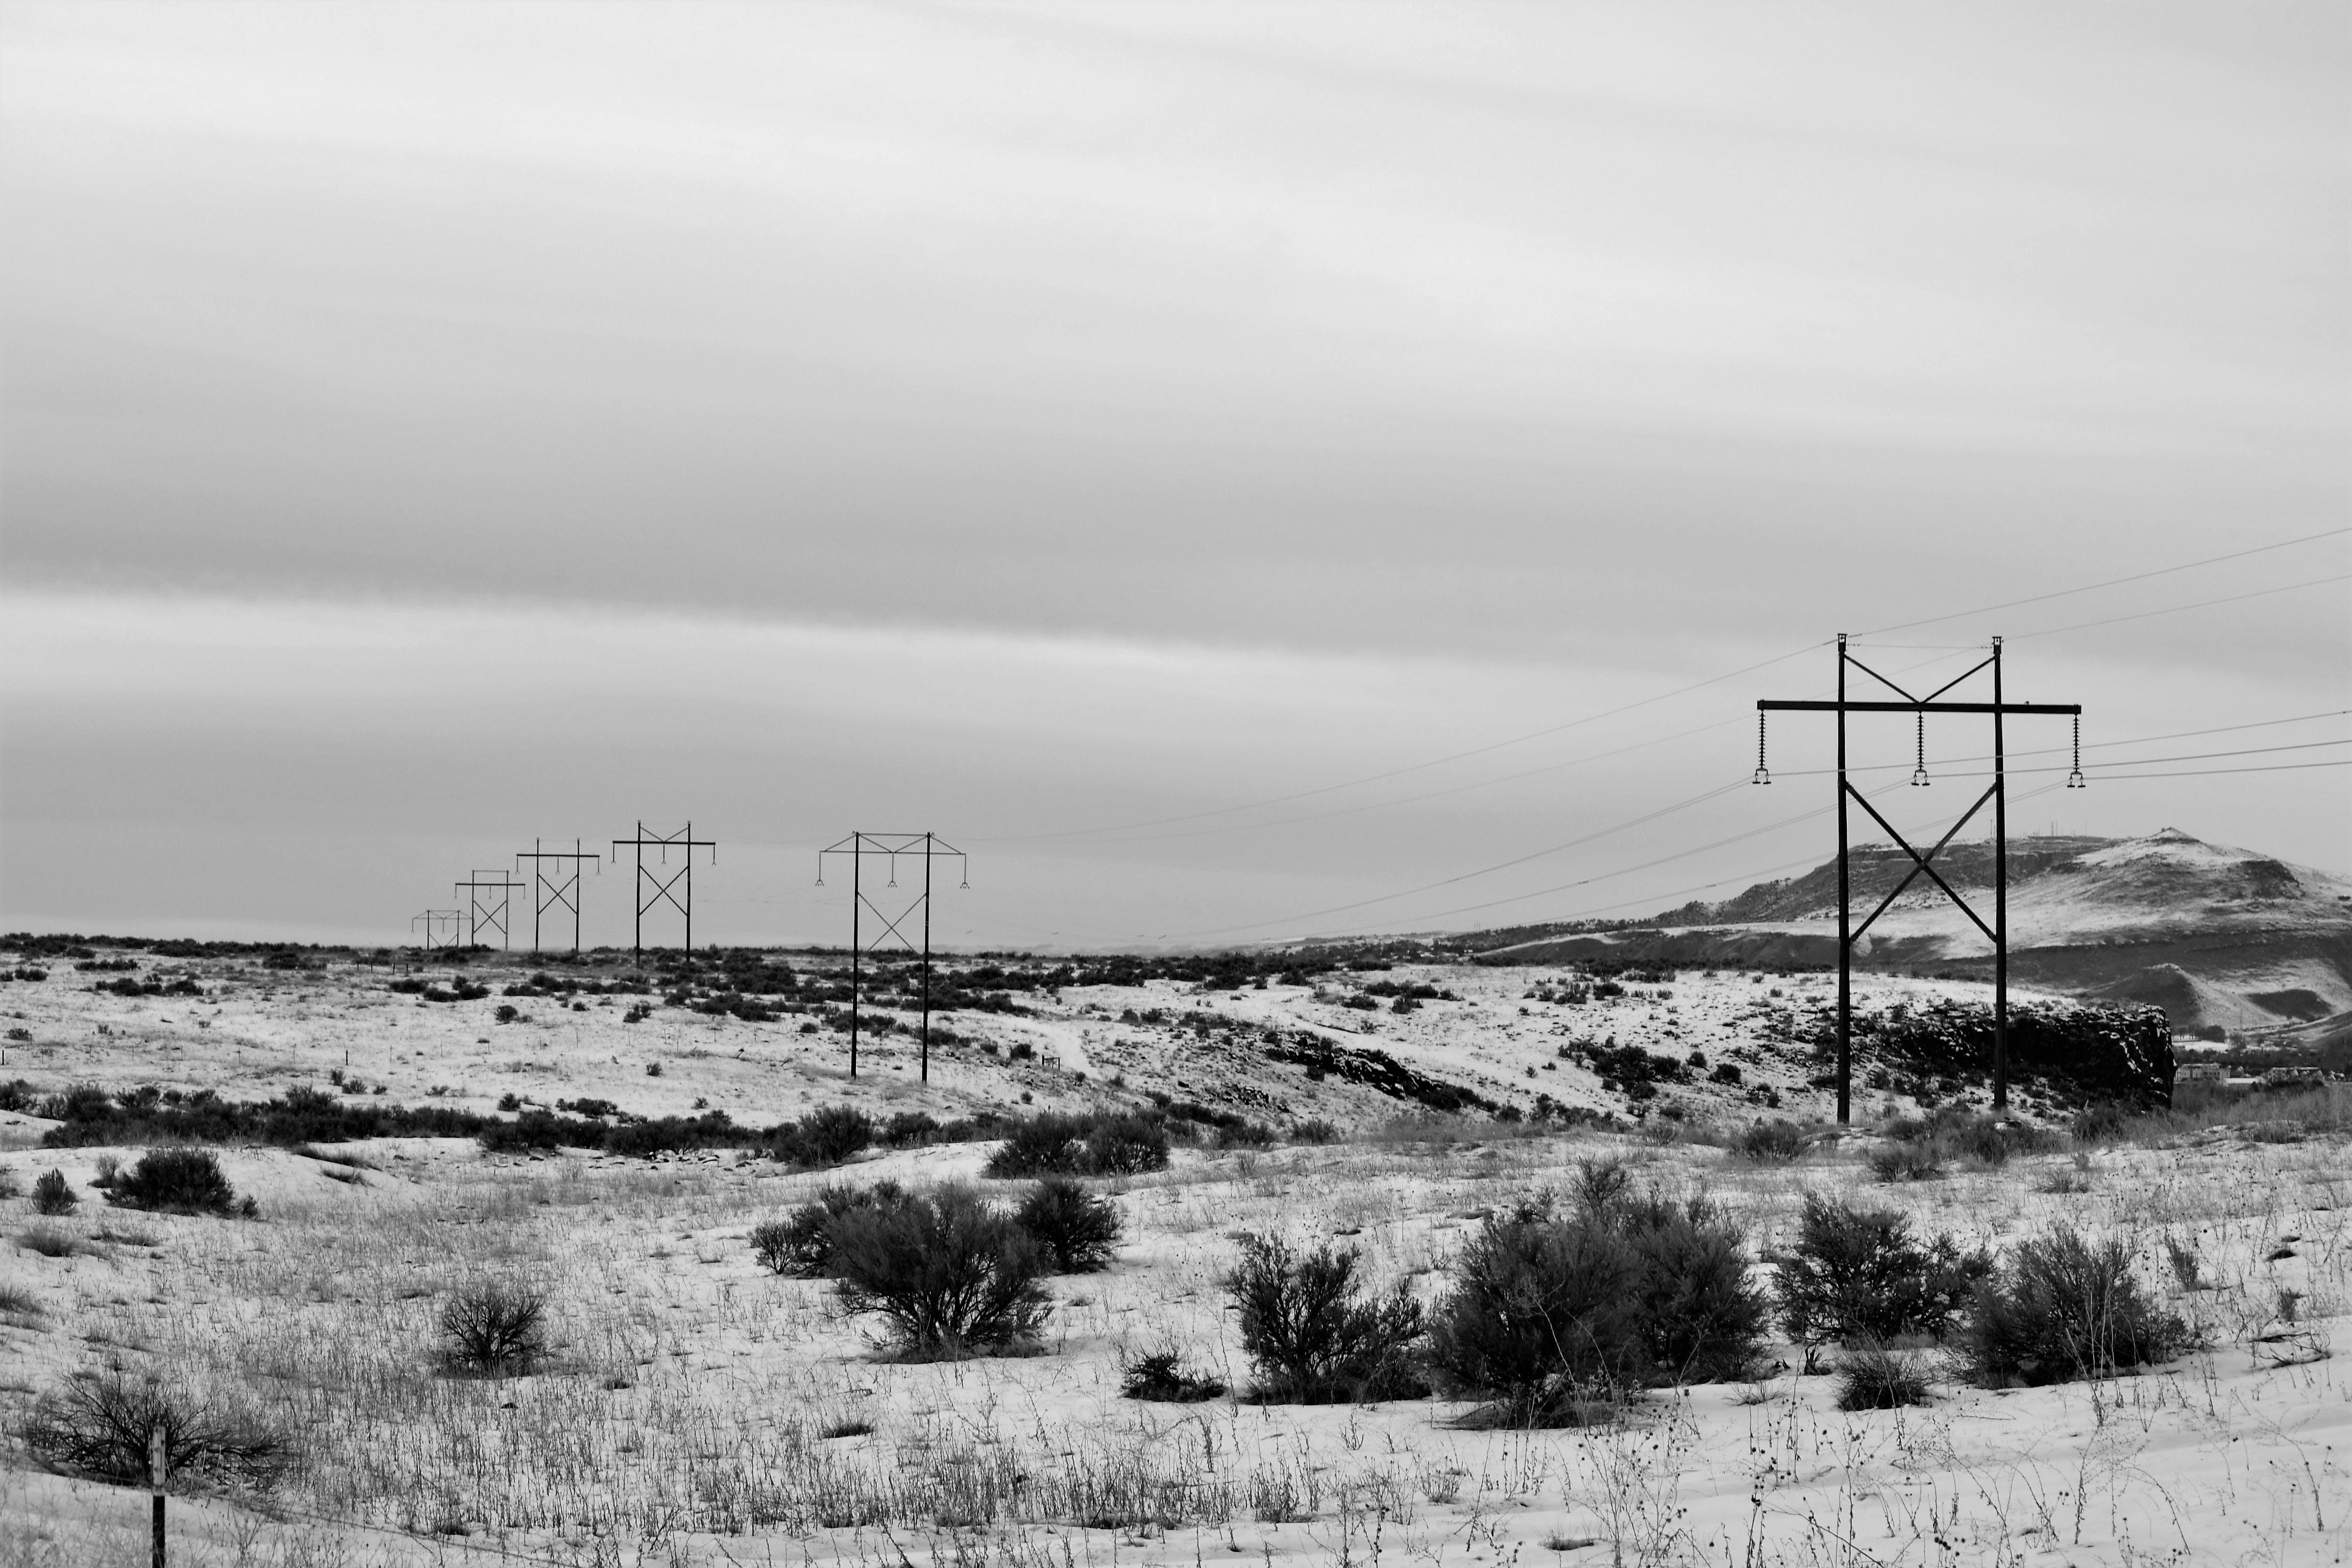 Electric Posts on Dry Field